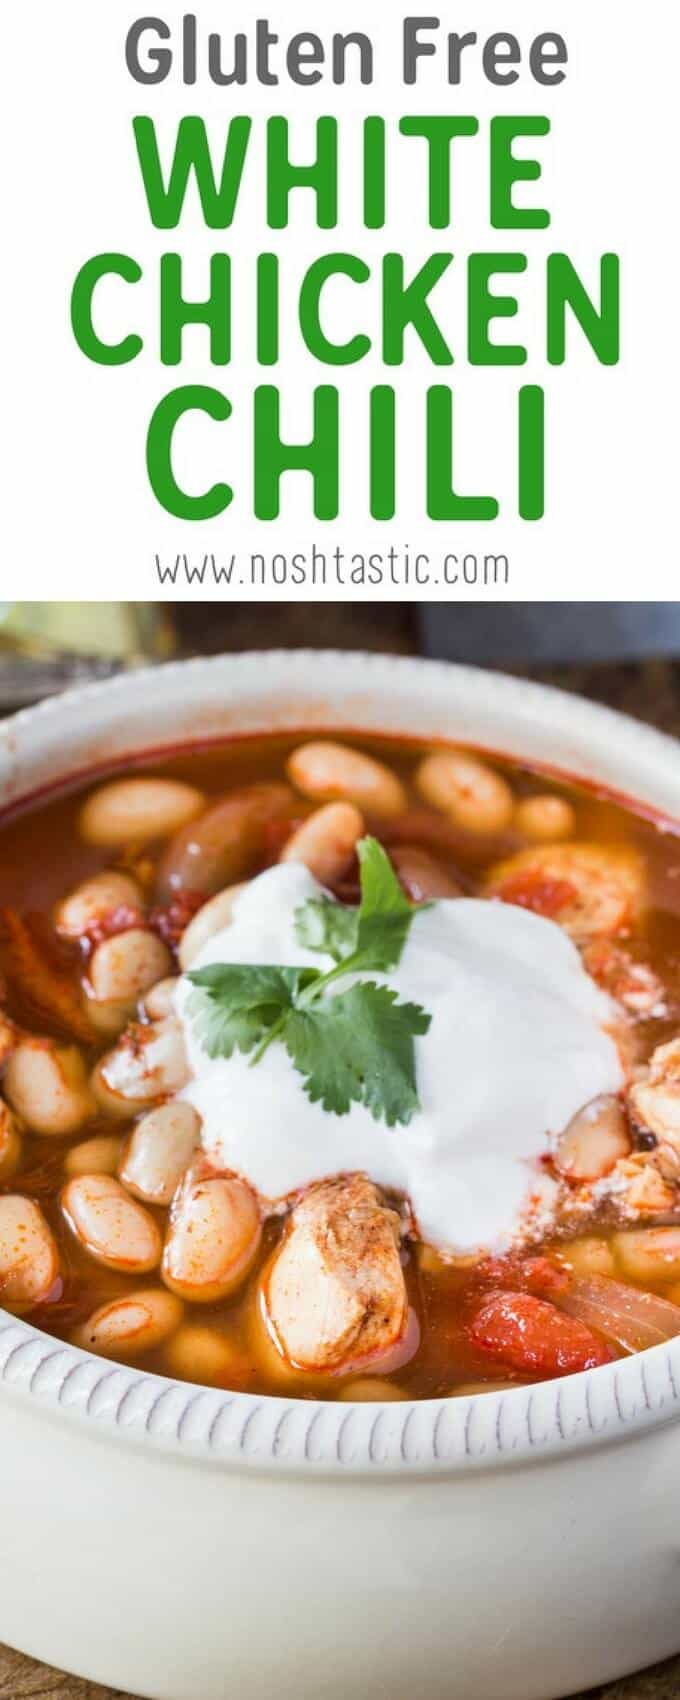 An Easy Gluten Free White Chicken Chili recipe that's ready in less than 30 minutes!